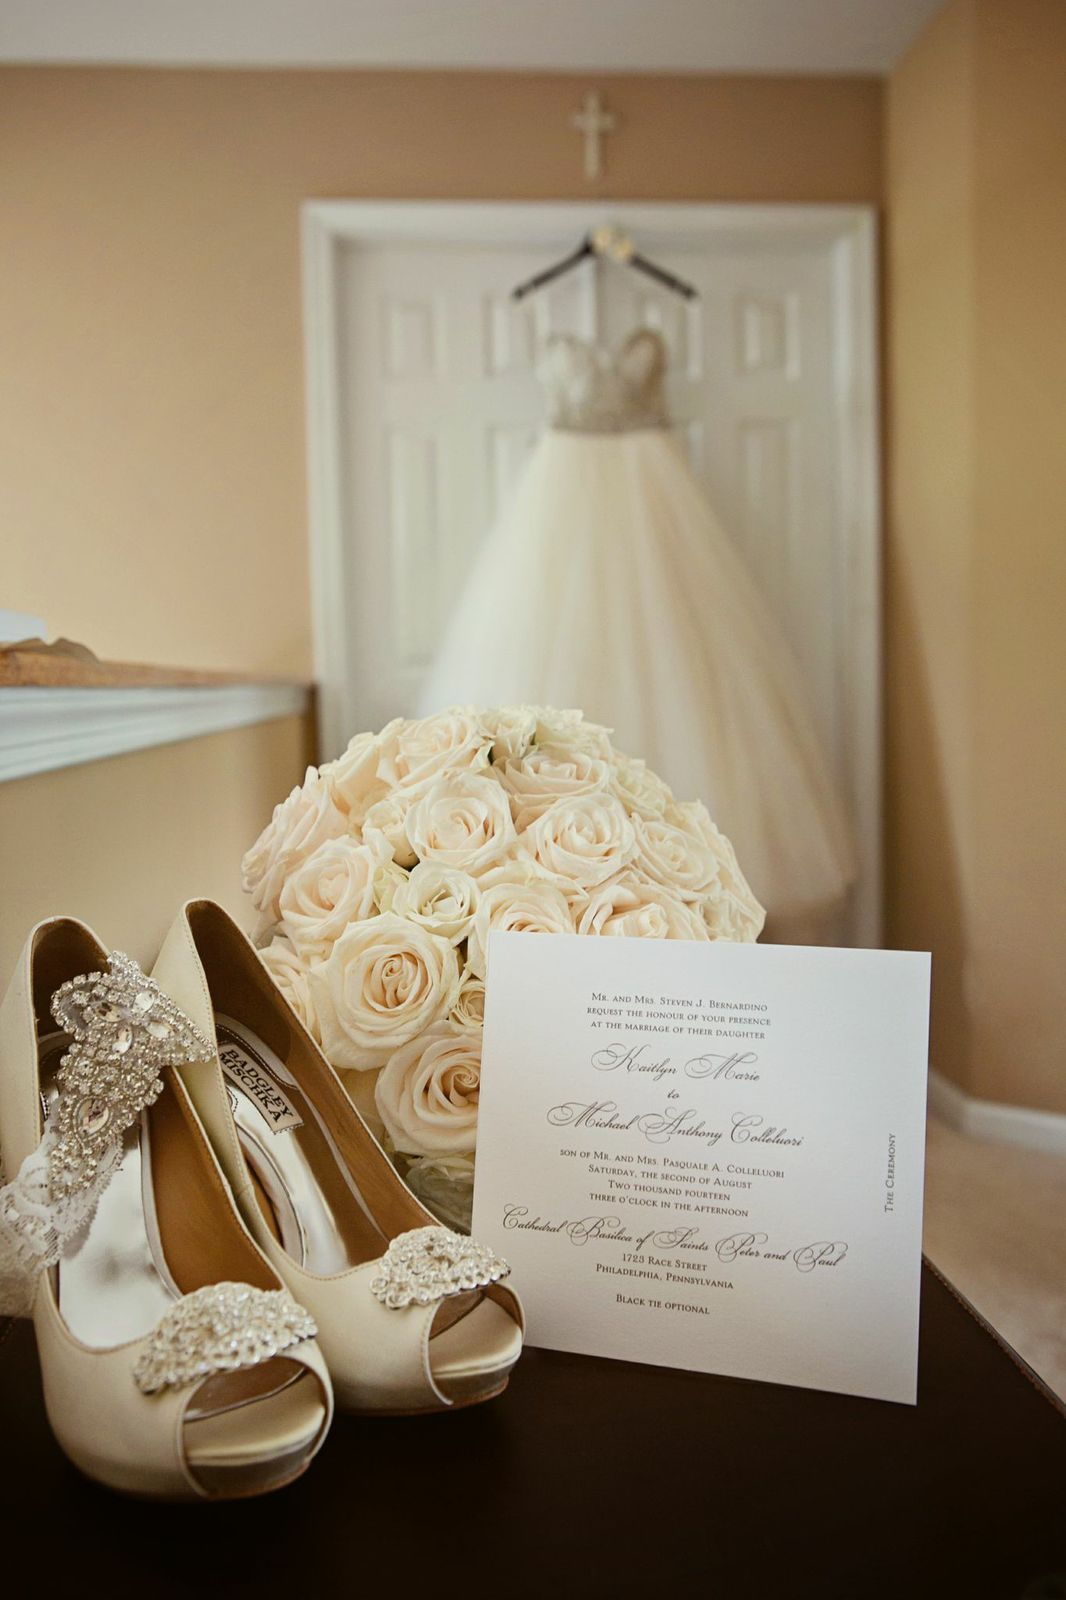 Classically Glamorous New Jersey Wedding from Jennifer Childress Photography. To see more: http://www.modwedding.com/2014/08/26/luxe-new-york-wedding-erganic-design/ #wedding #weddings